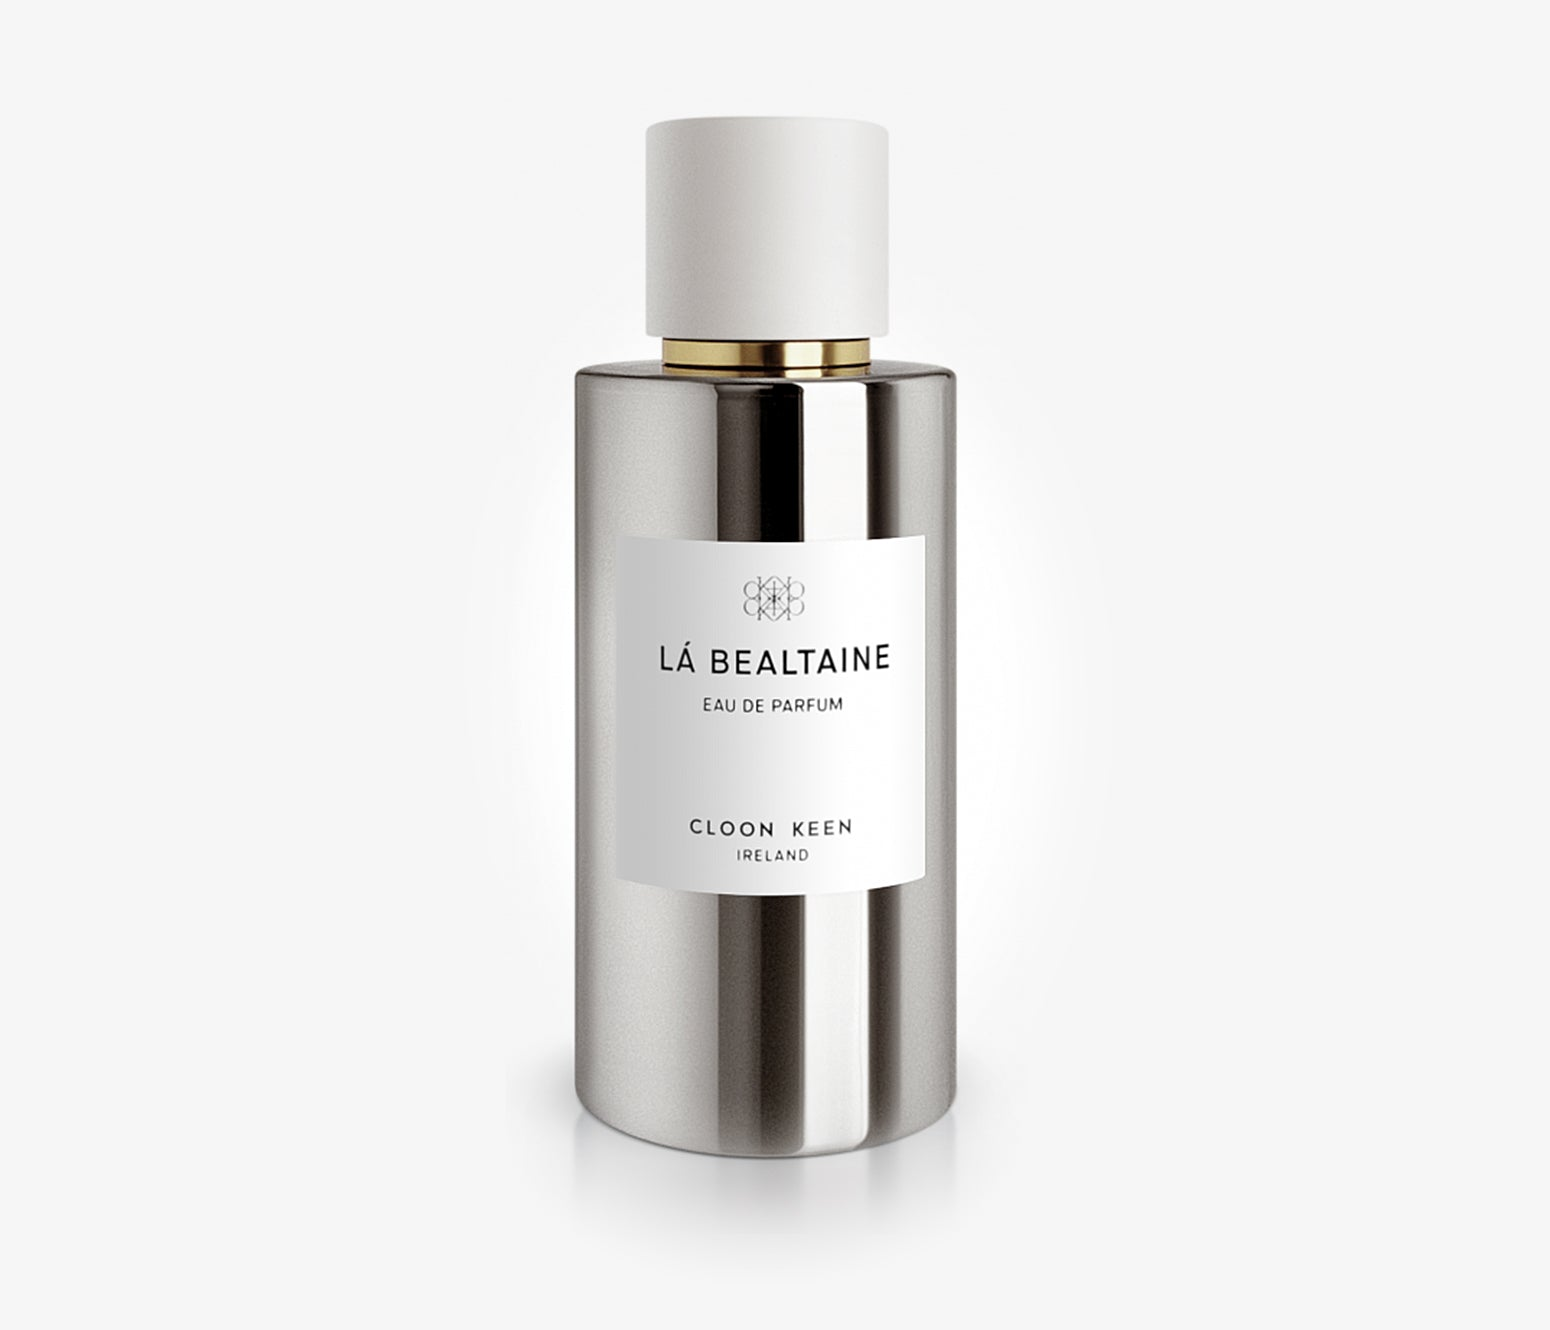 Cloon Keen - Lá Bealtaine - 100ml - VWF001 - product image - Fragrance - Les Senteurs